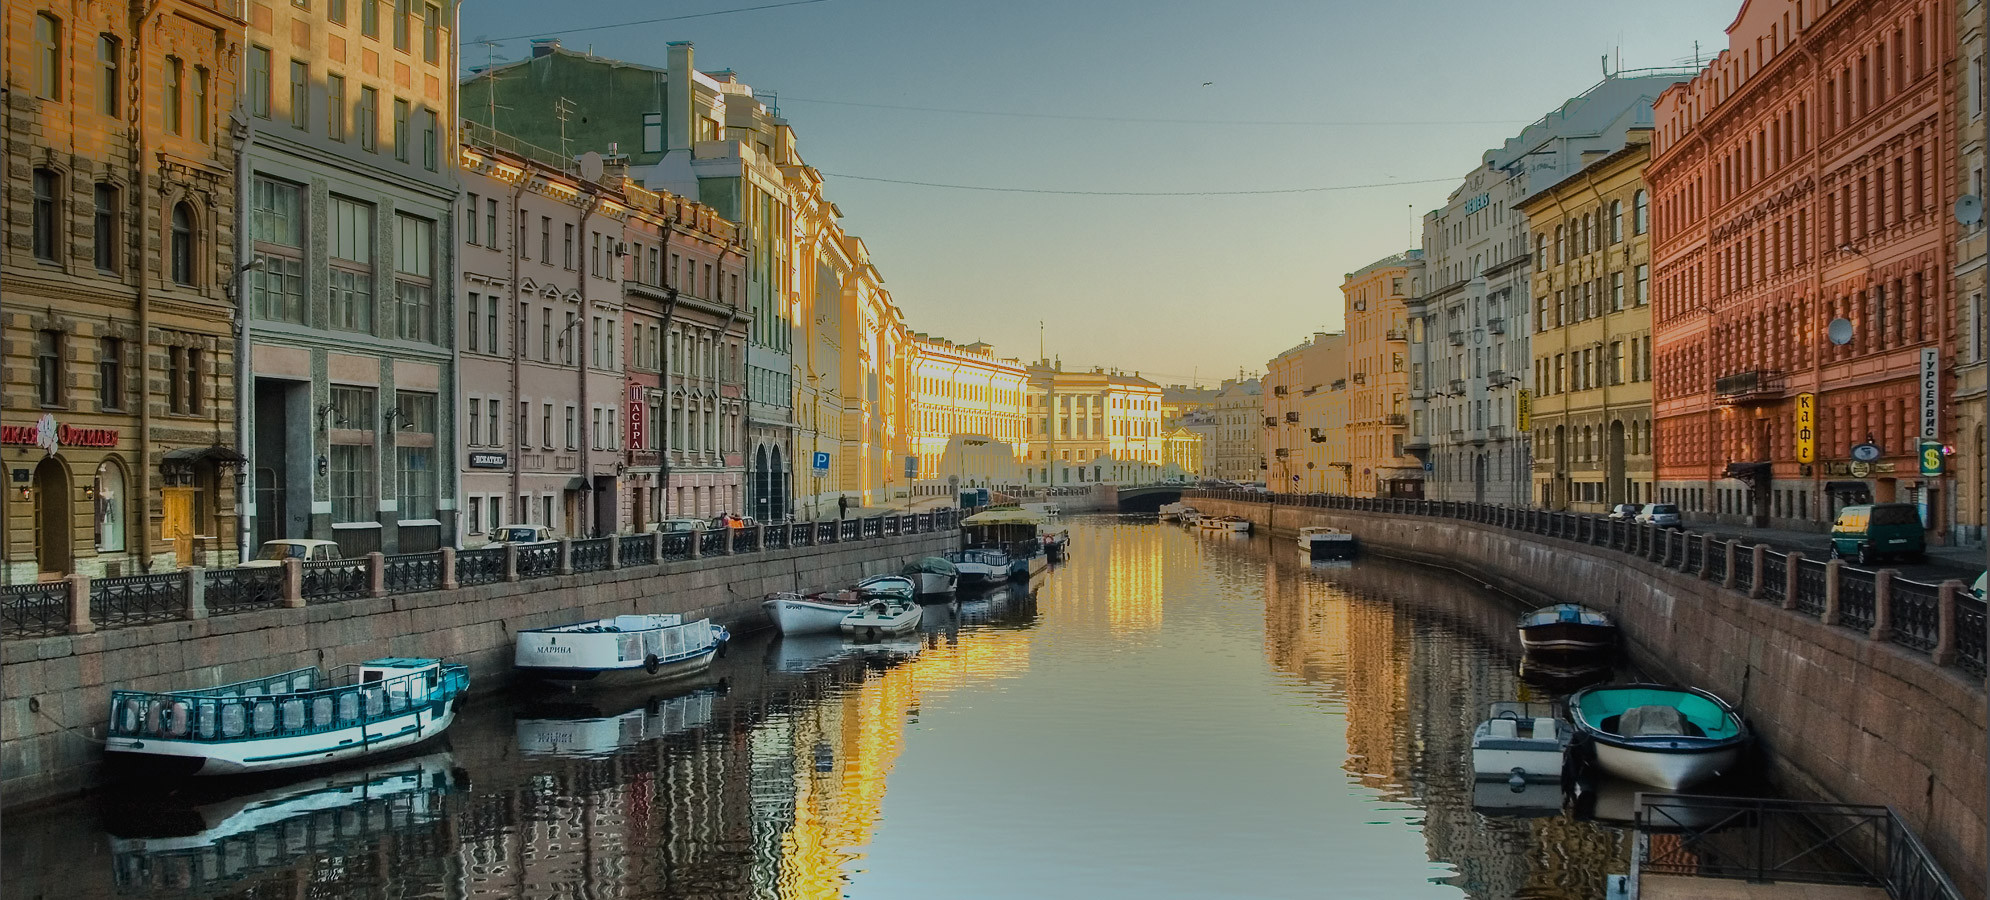 DISCOVER ST. PETERSBURG